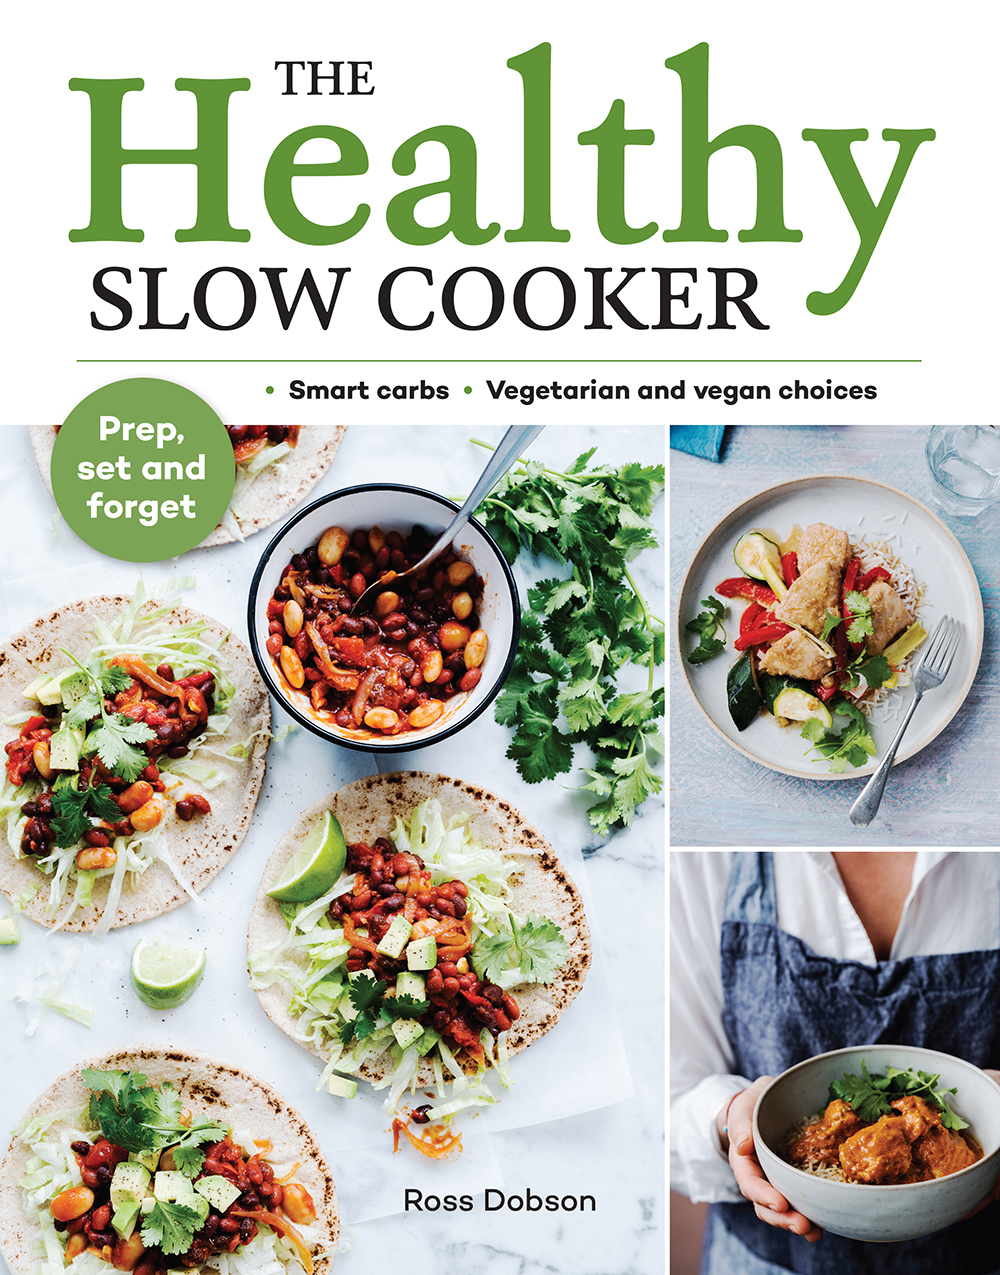 Images and text fromThe Healthy Slow Cooker by Ross Dobson, Photography by Jeremy Simons. - Murdoch Books, $35.00. Out now